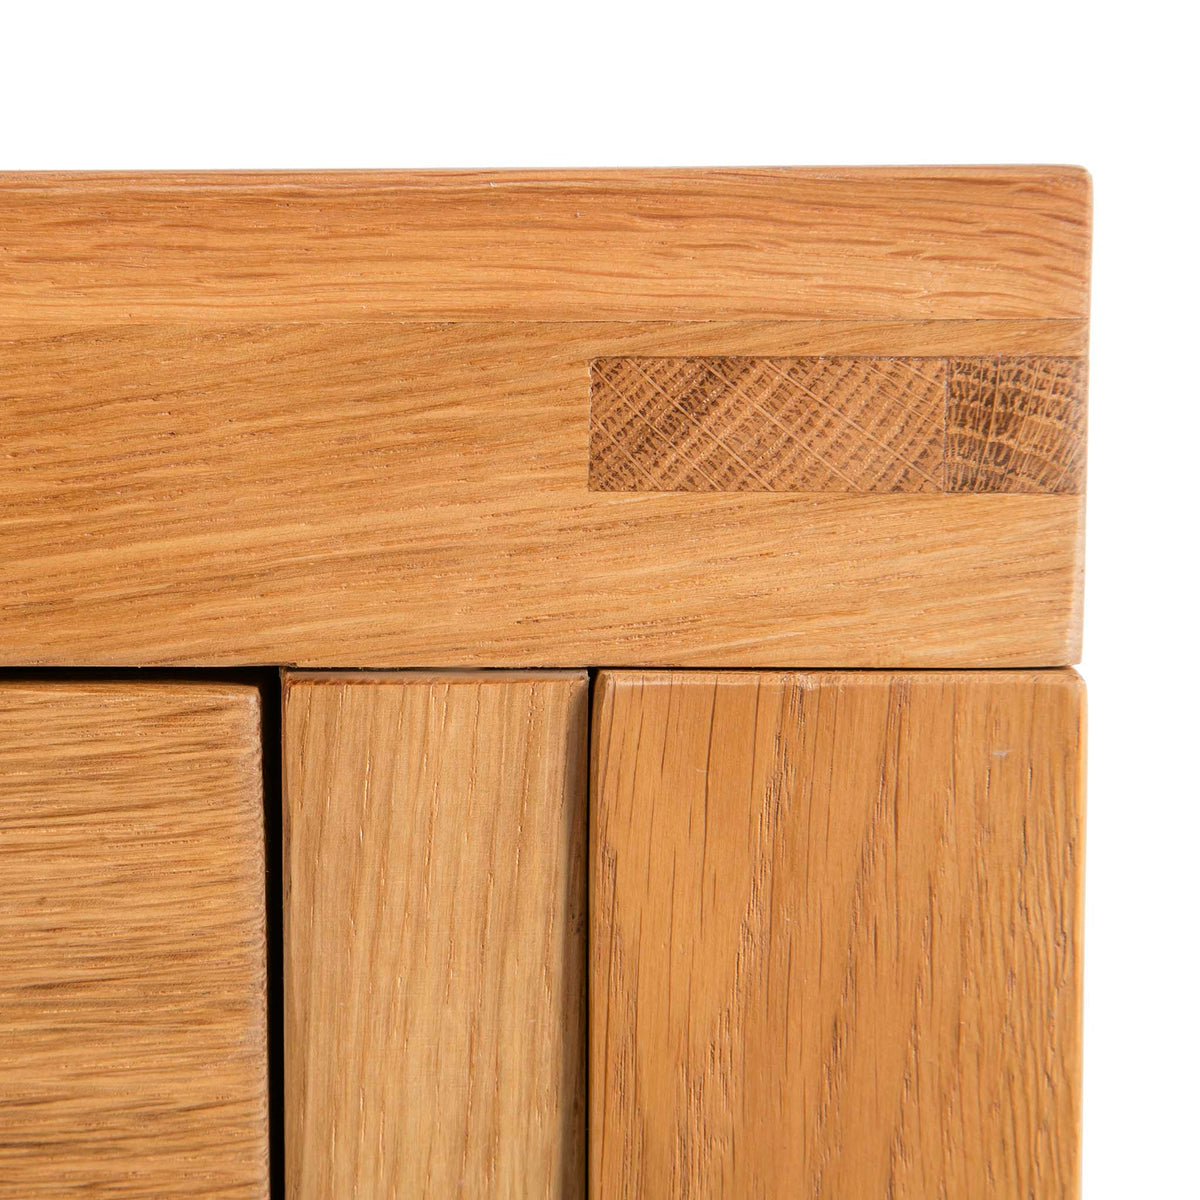 Abbey Waxed Oak Coffee Table with Storage - Close up of corner tenon joint